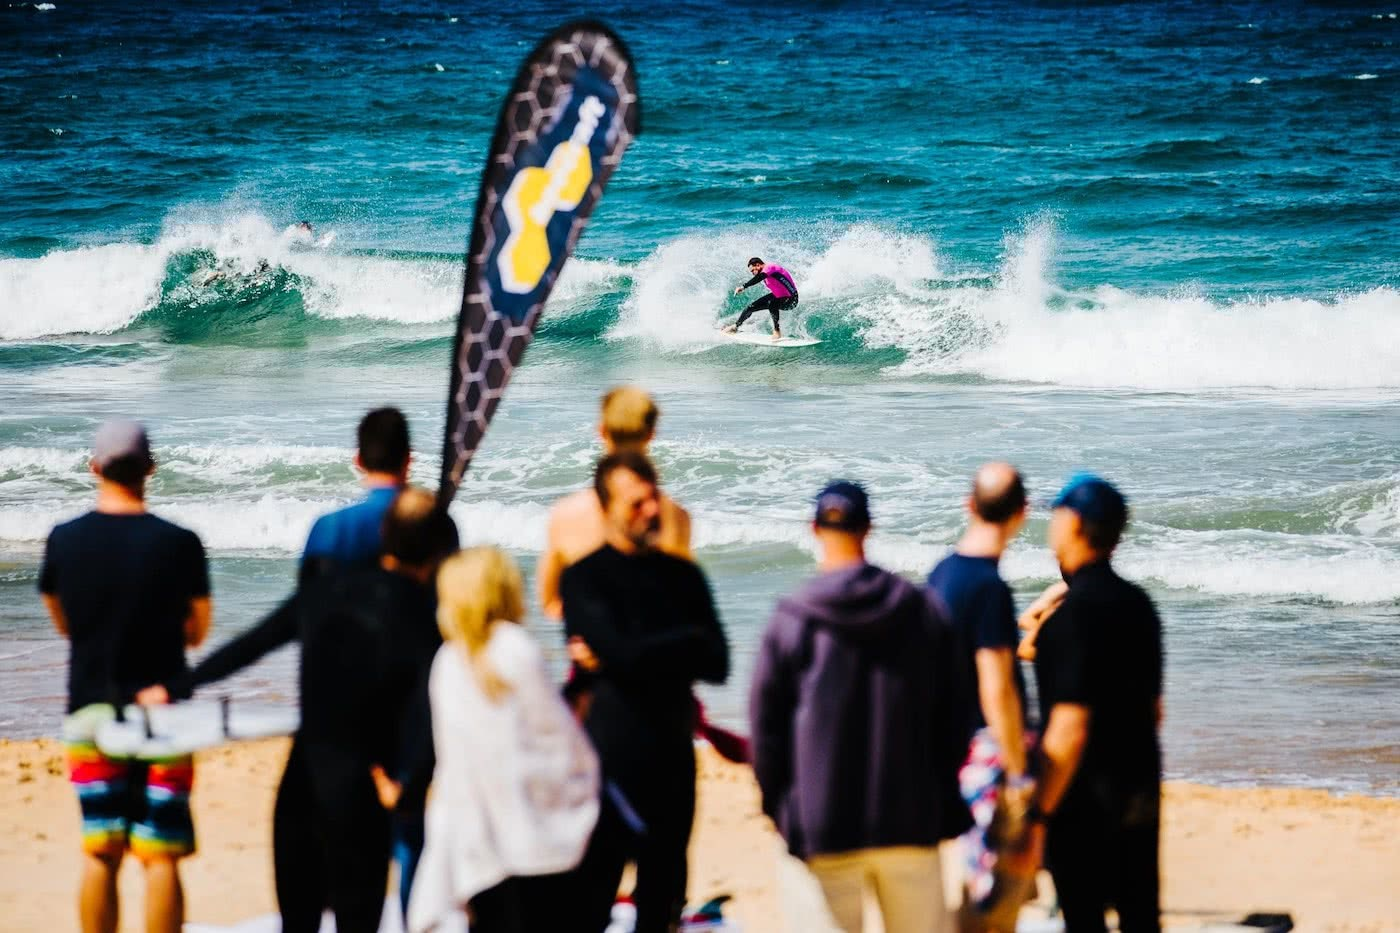 Get Barrelled For Good // Sign Up For The SurfAid Cup, ocean, wave, surfer, crowd